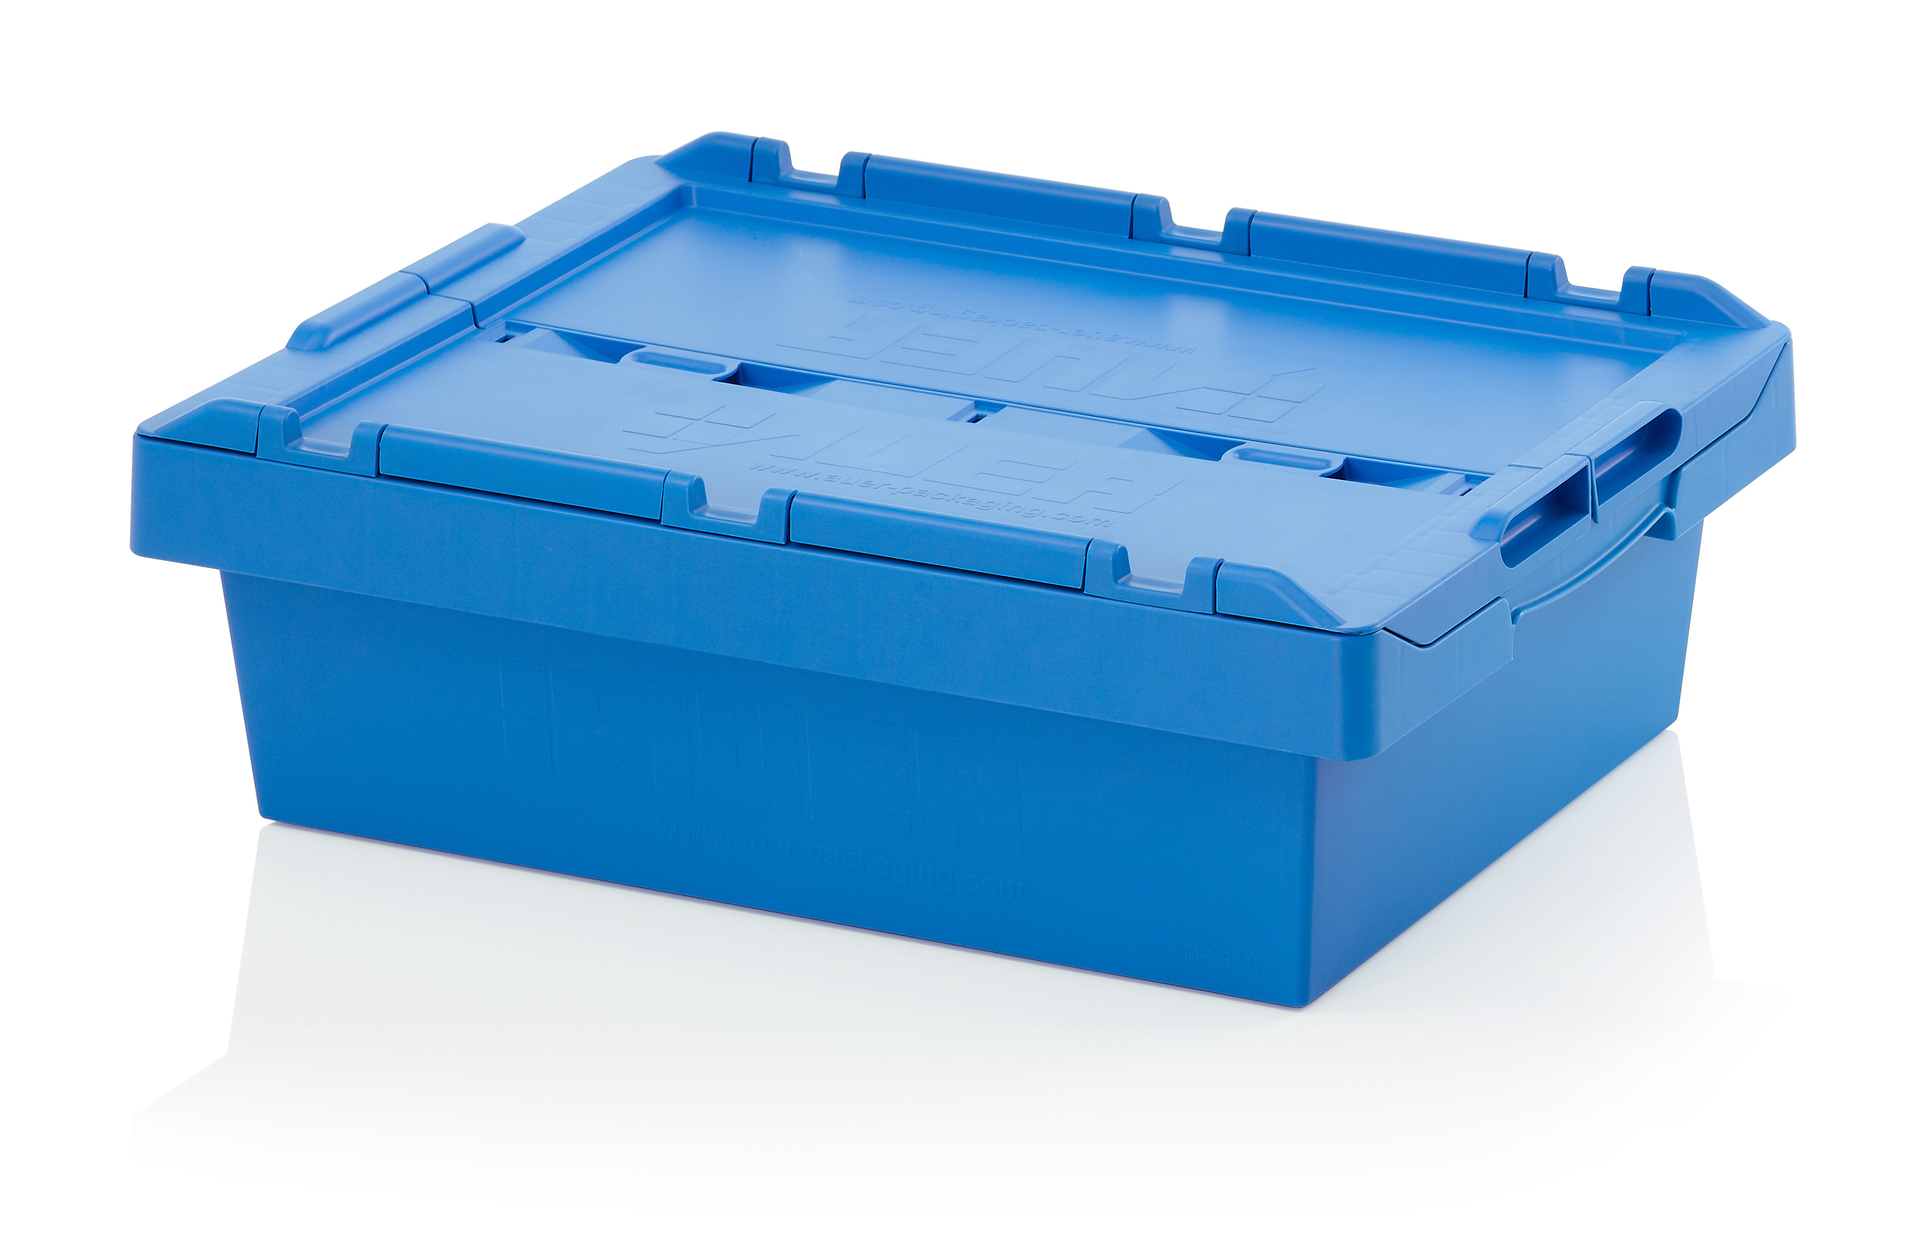 RC6170L_1 Reusable Containers - Plastic Mouldings Northern